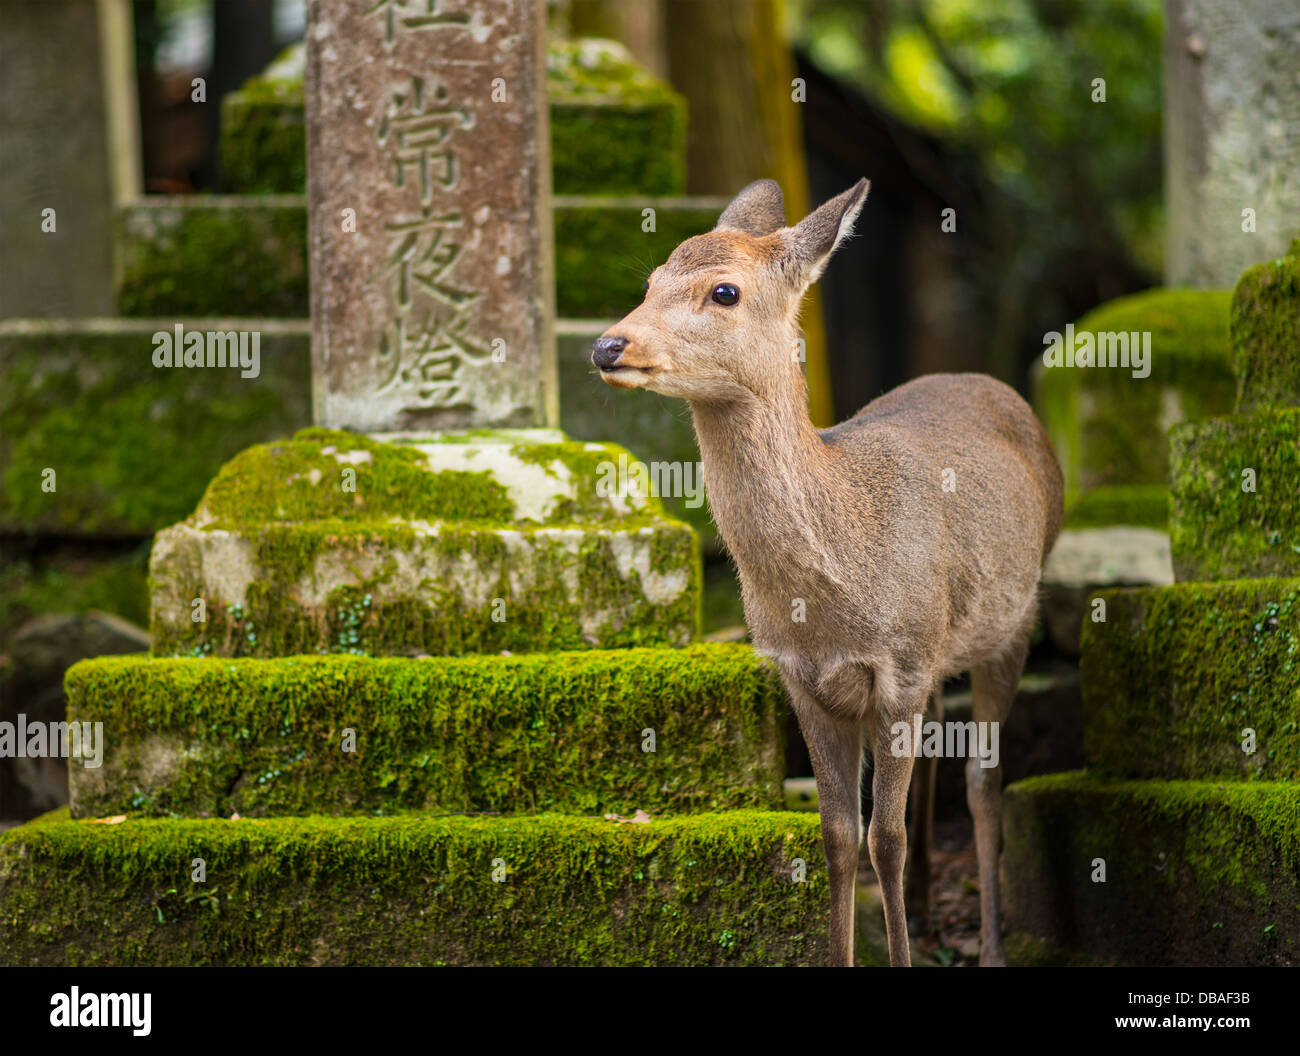 Nara deer roam free in Nara Park, Japan. - Stock Image